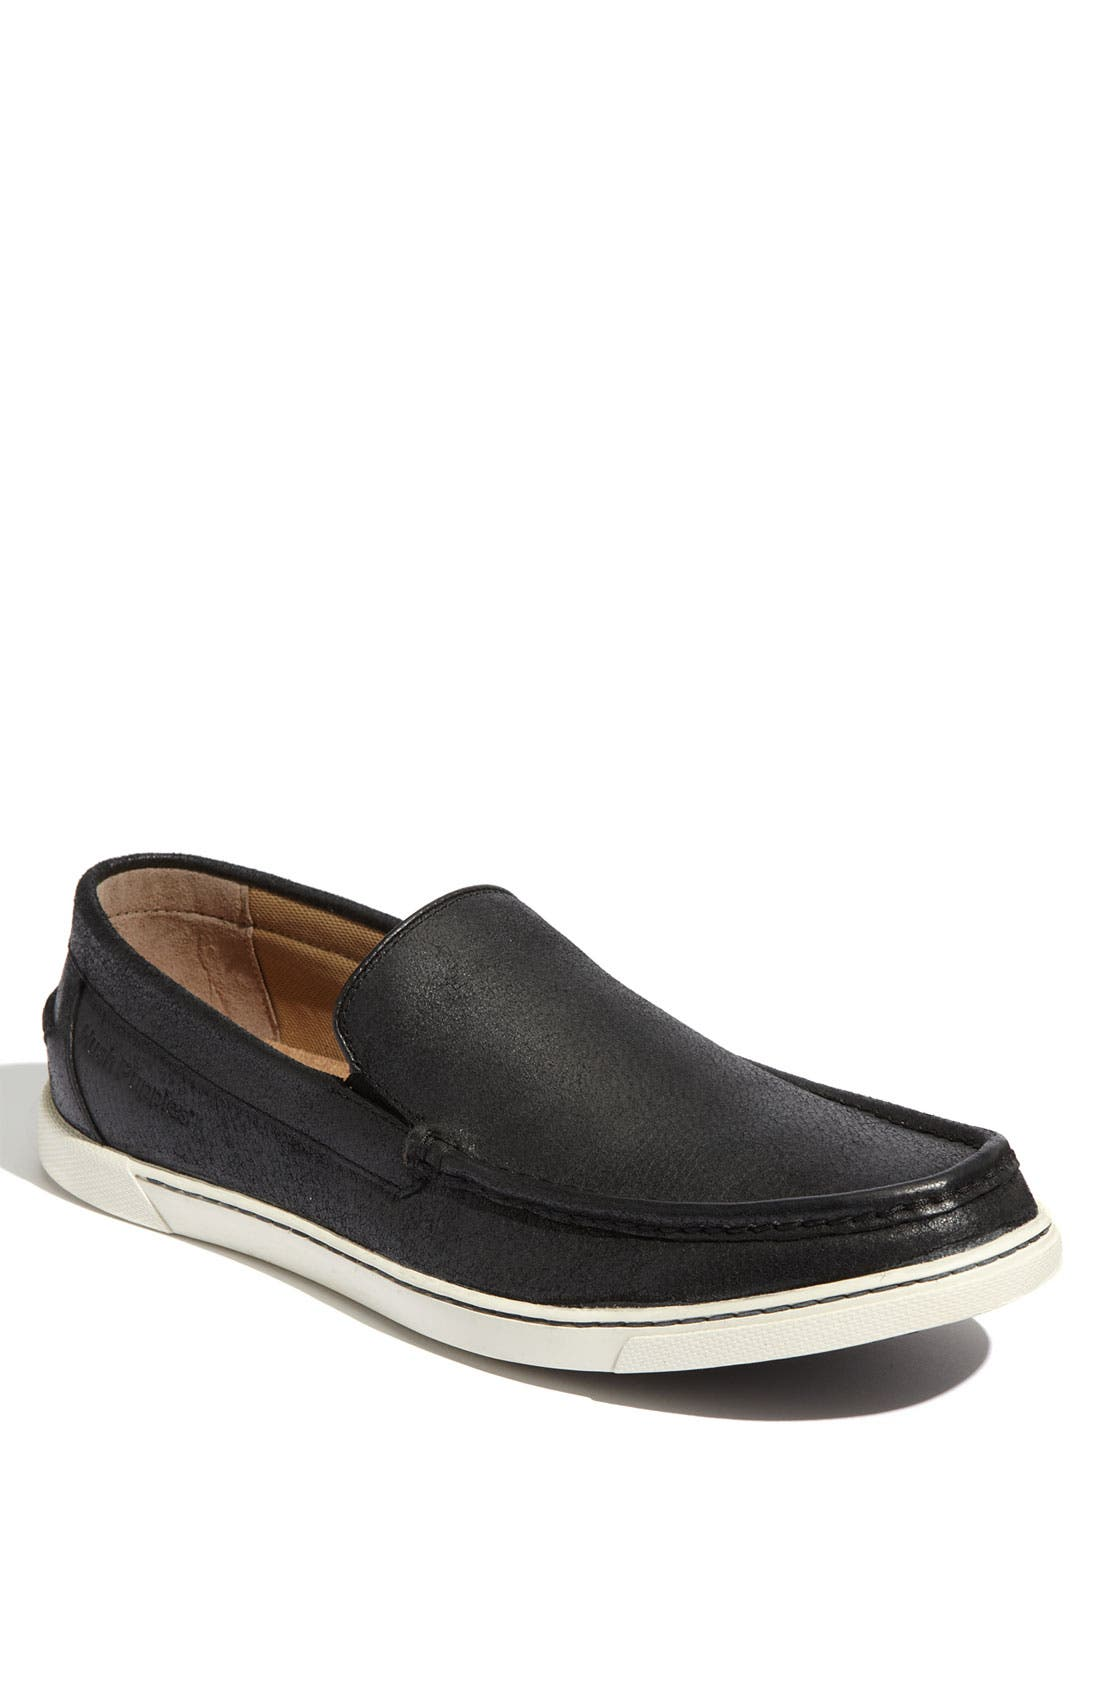 Alternate Image 1 Selected - Hush Puppies® 'Winns' Slip-On